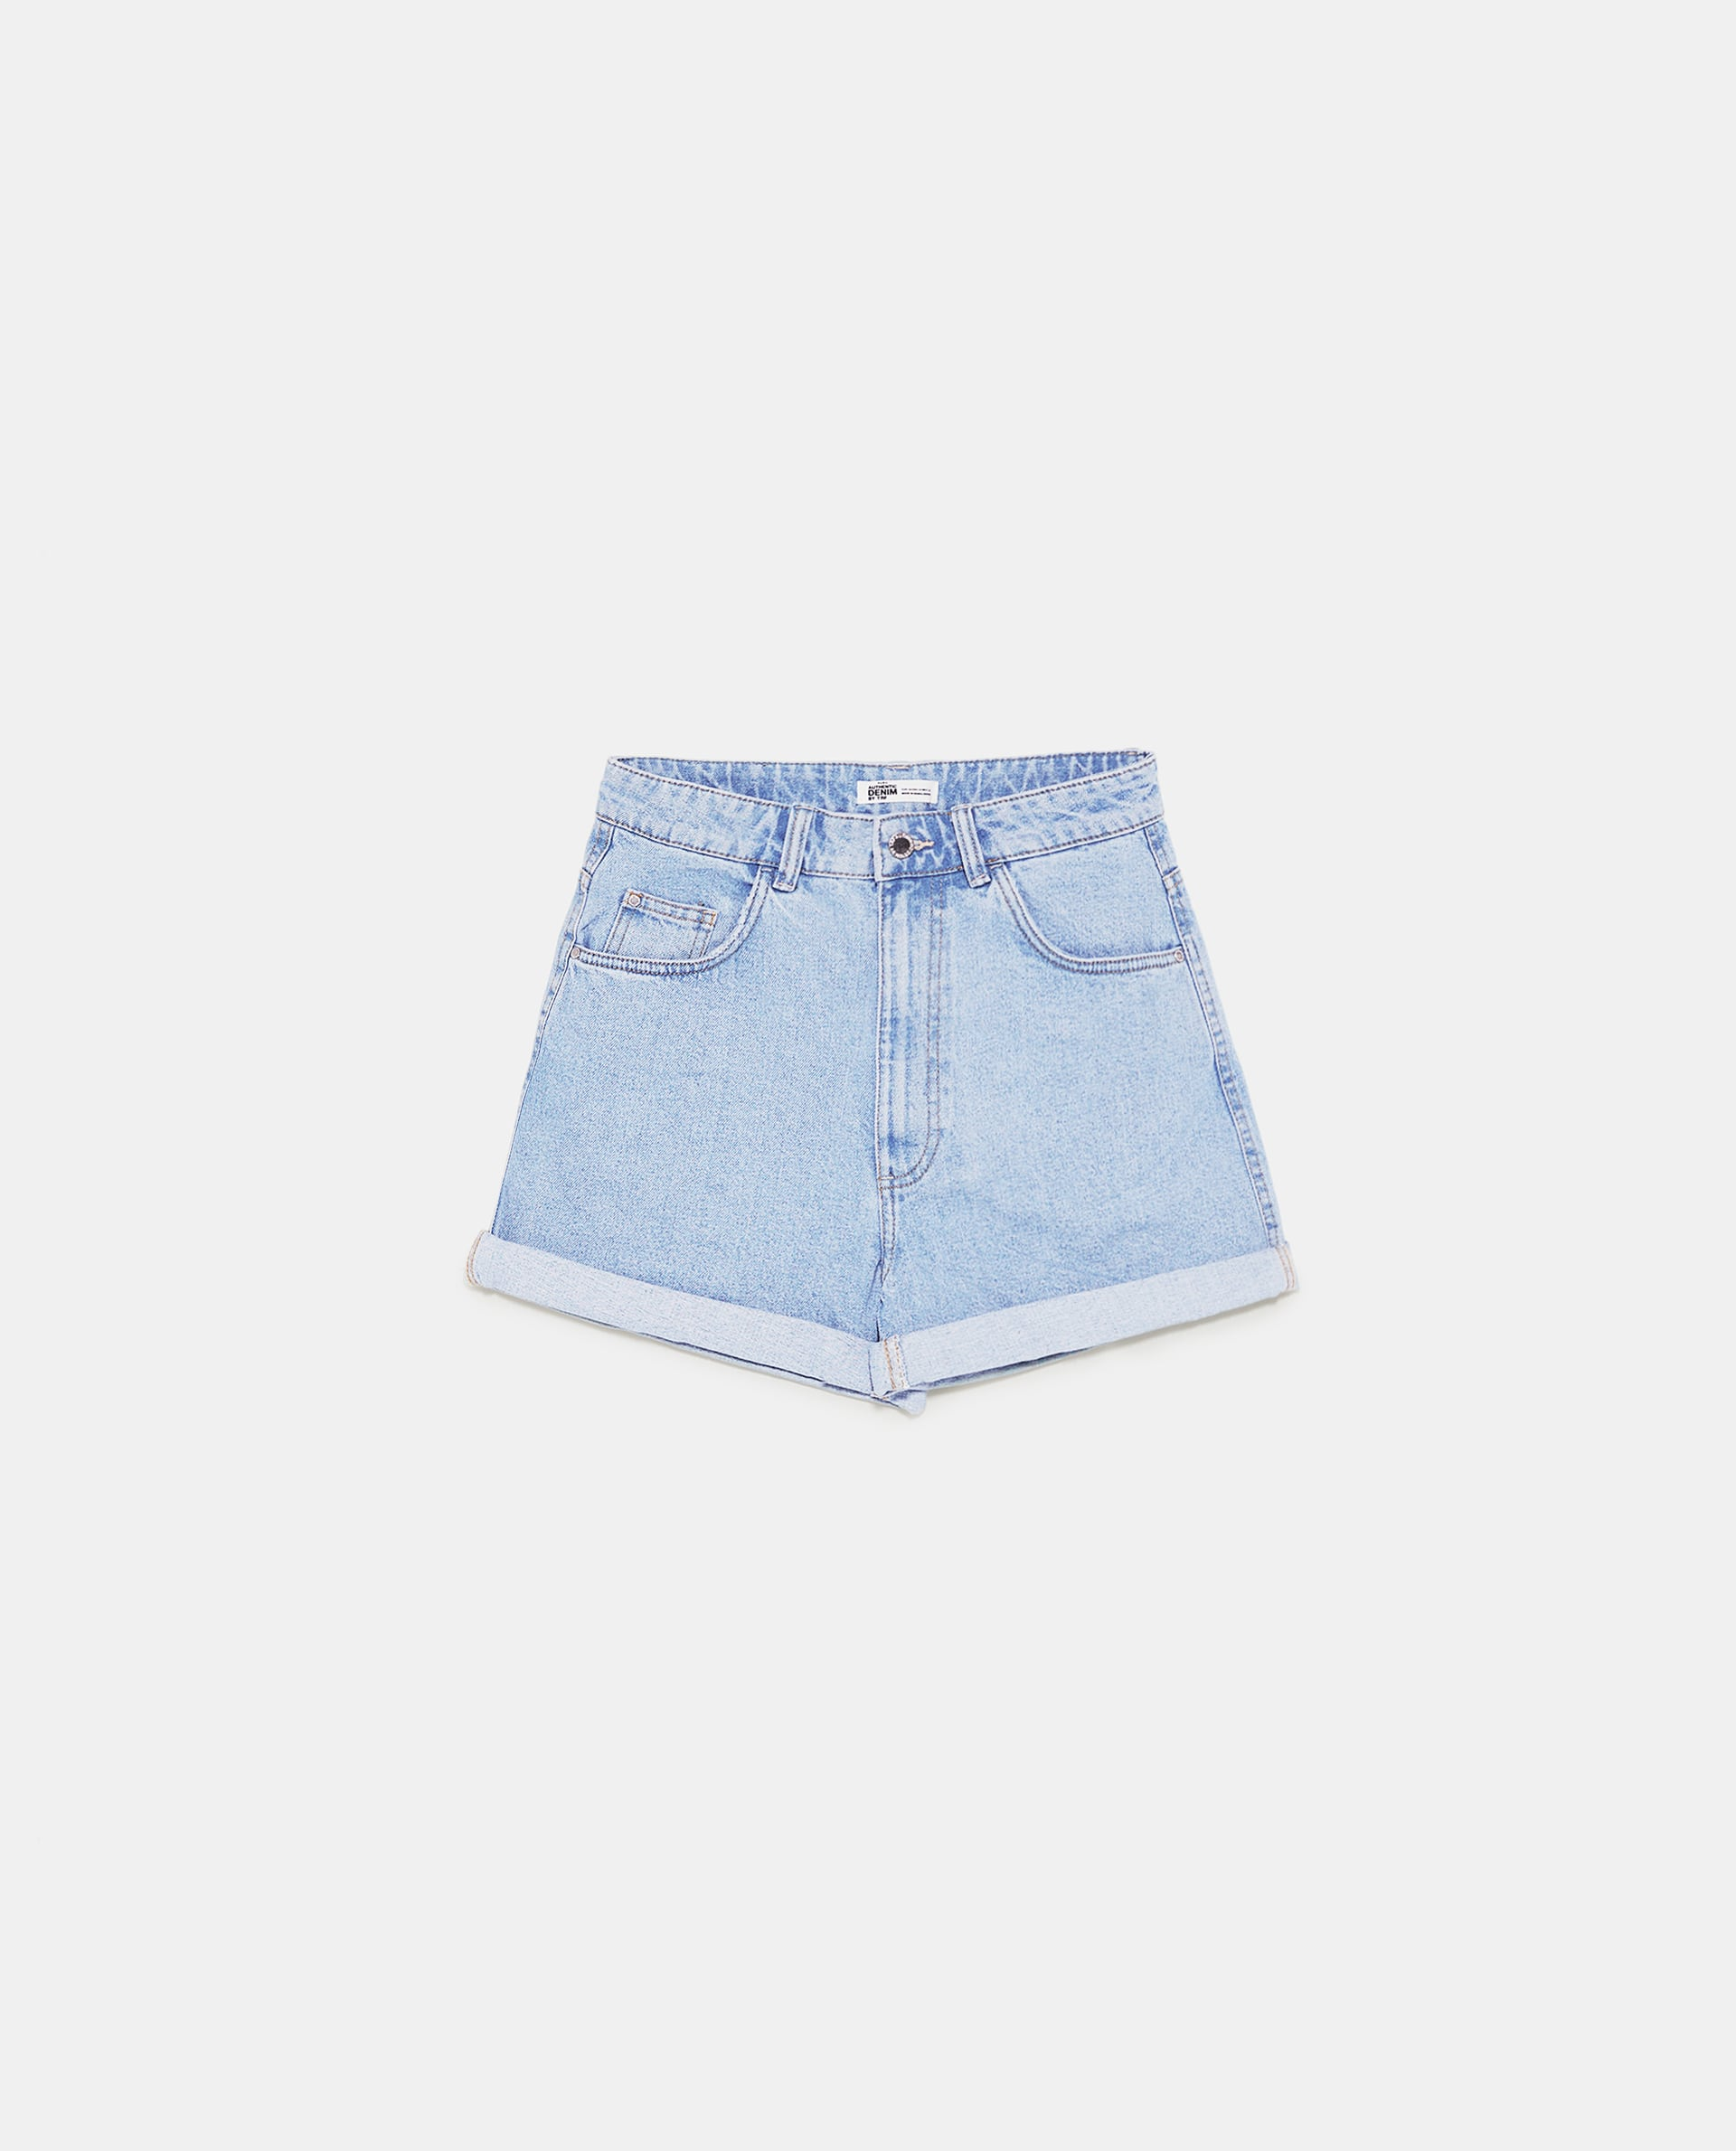 https://www.zara.com/ca/en/mom-fit-bermuda-shorts-p08197009.html?v1=5526013&v2=1058024